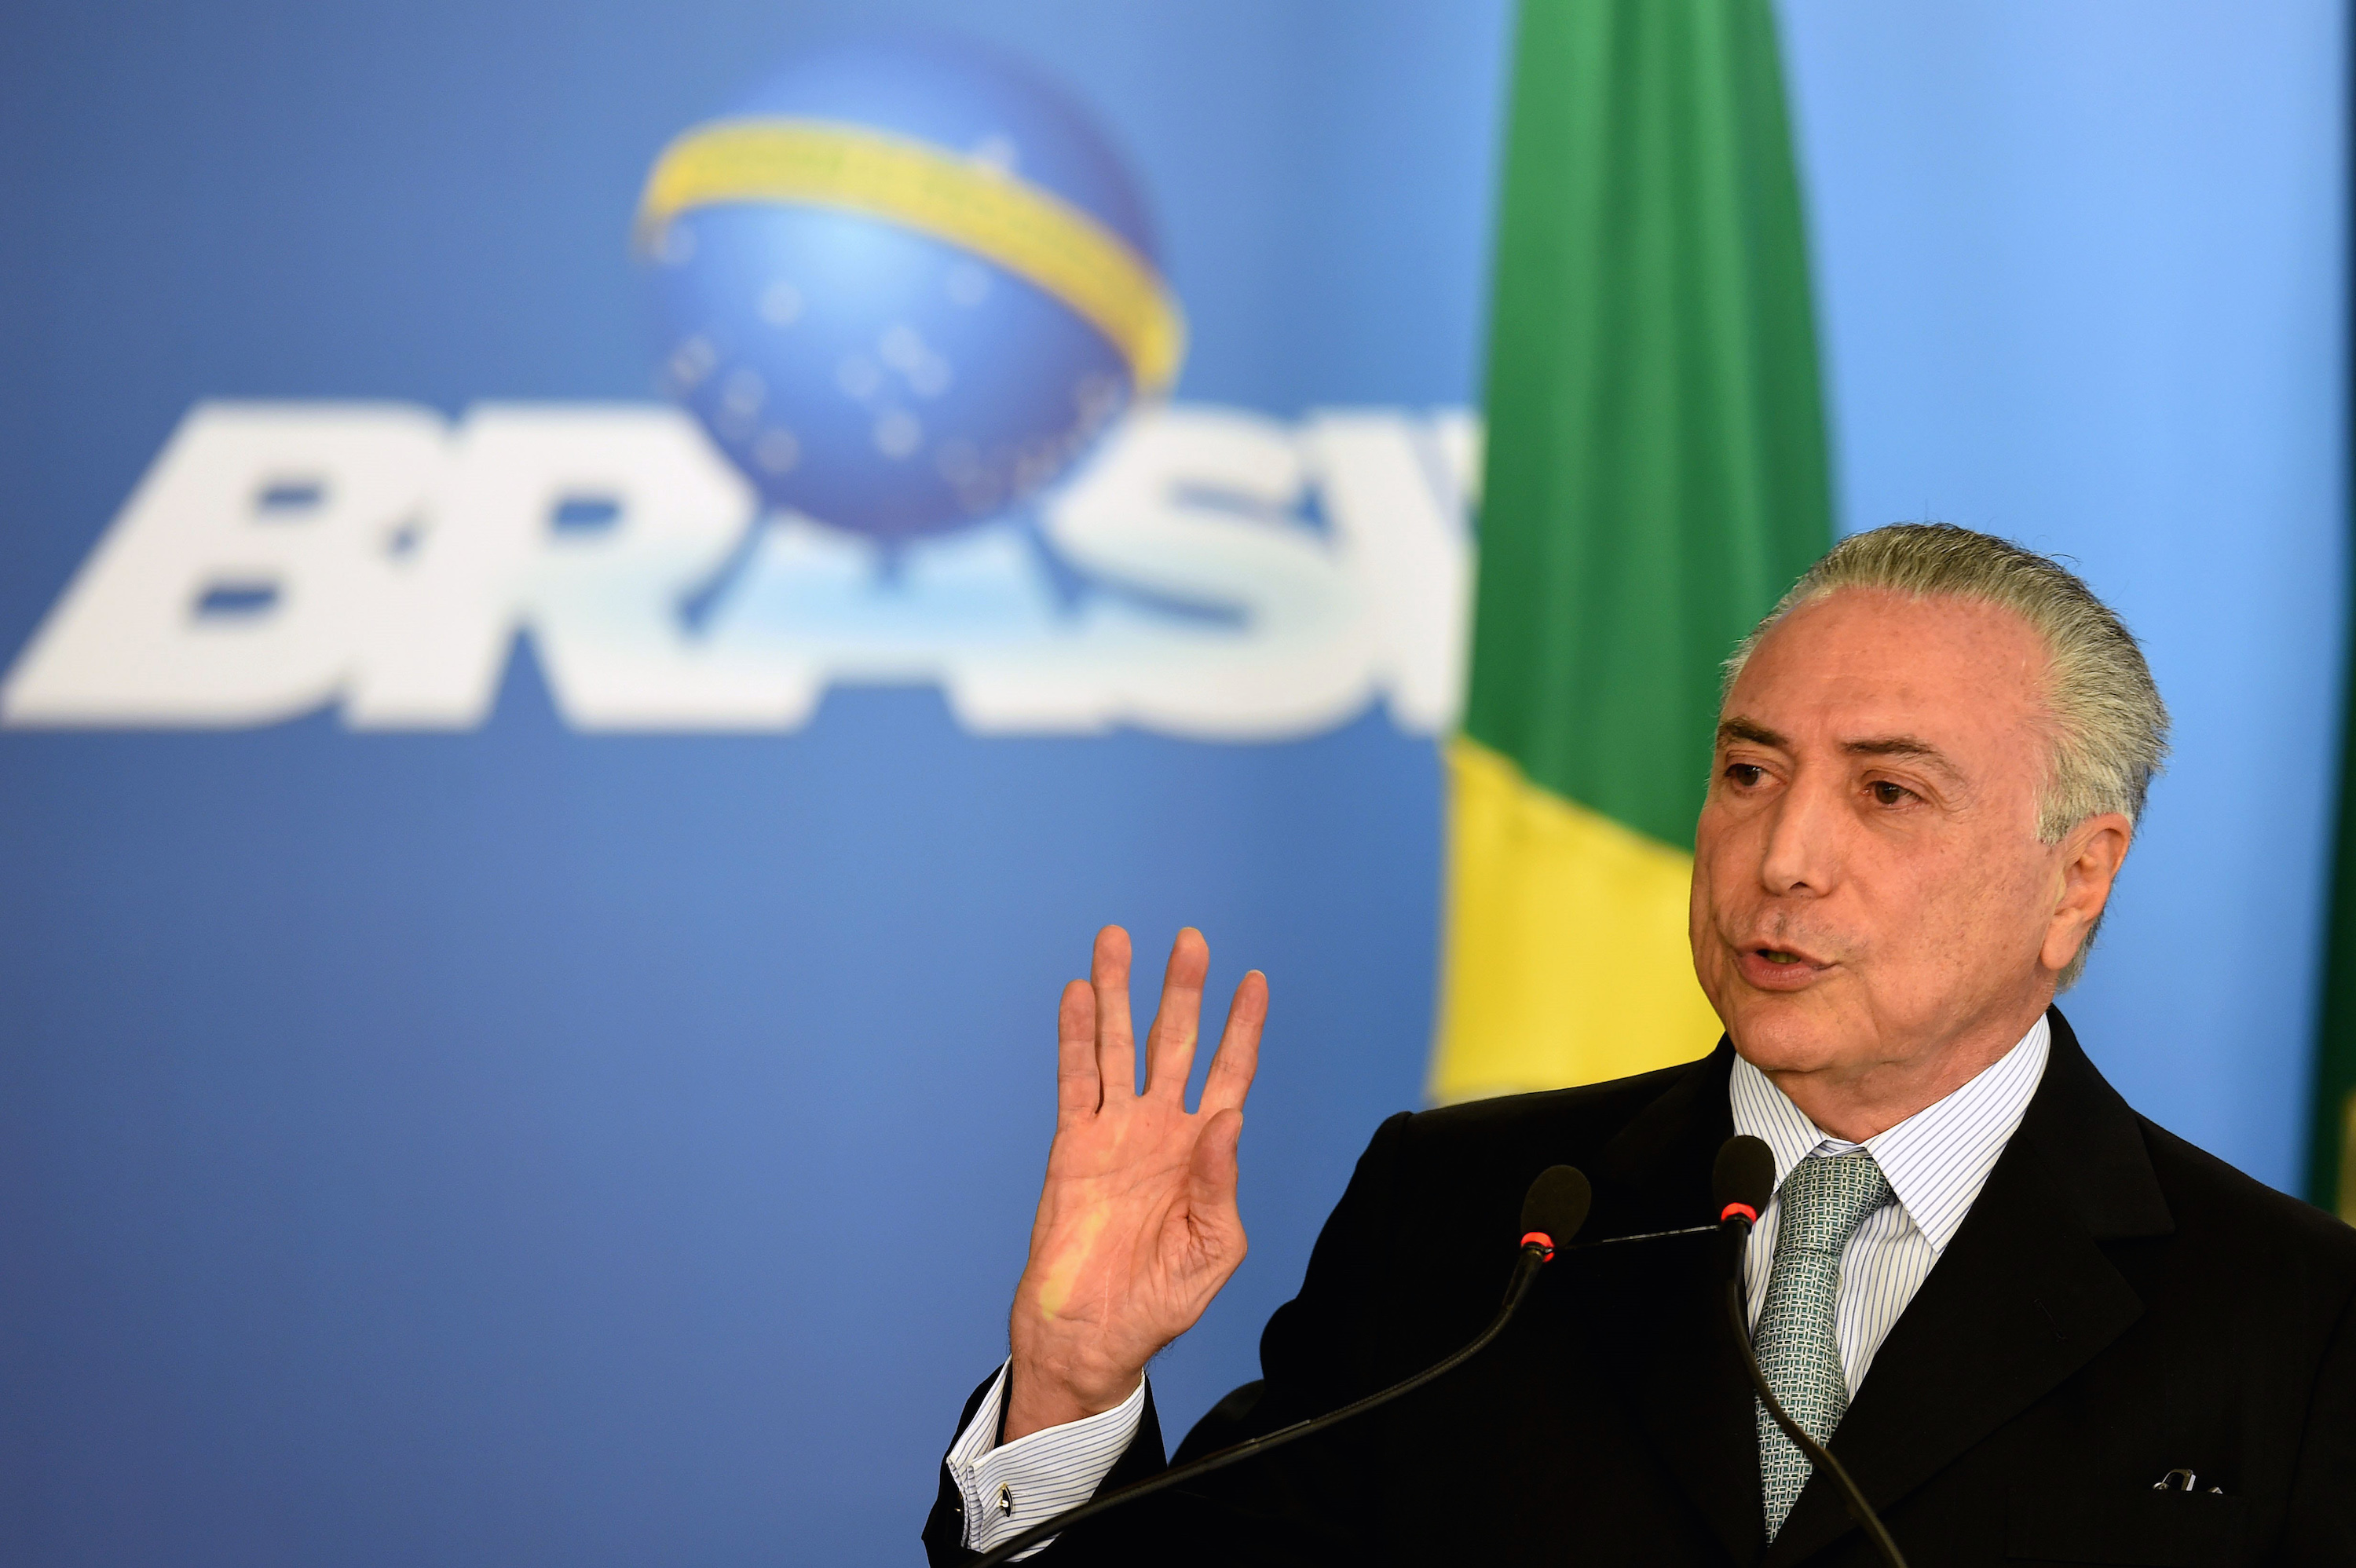 Brazilian acting President Michel Temer delivers a speech during the inauguration ceremony of the new Minister of Transparency, Torquato Jardim, at Planalto Palace in Brasilia, on June 2, 2016. Brazil's interim government on Monday suffered its second crisis in a week when the Minister of Transparency Fabiano Silvera resigned after he criticised the investigation of corruption in state oil company Petrobras. Temer has picked a market-friendly economic team and vowed to make extensive reforms, but already has lost two of his new ministers to a massive corruption scandal centered on state oil company Petrobras. / AFP / EVARISTO SA (Photo credit should read EVARISTO SA/AFP/Getty Images)